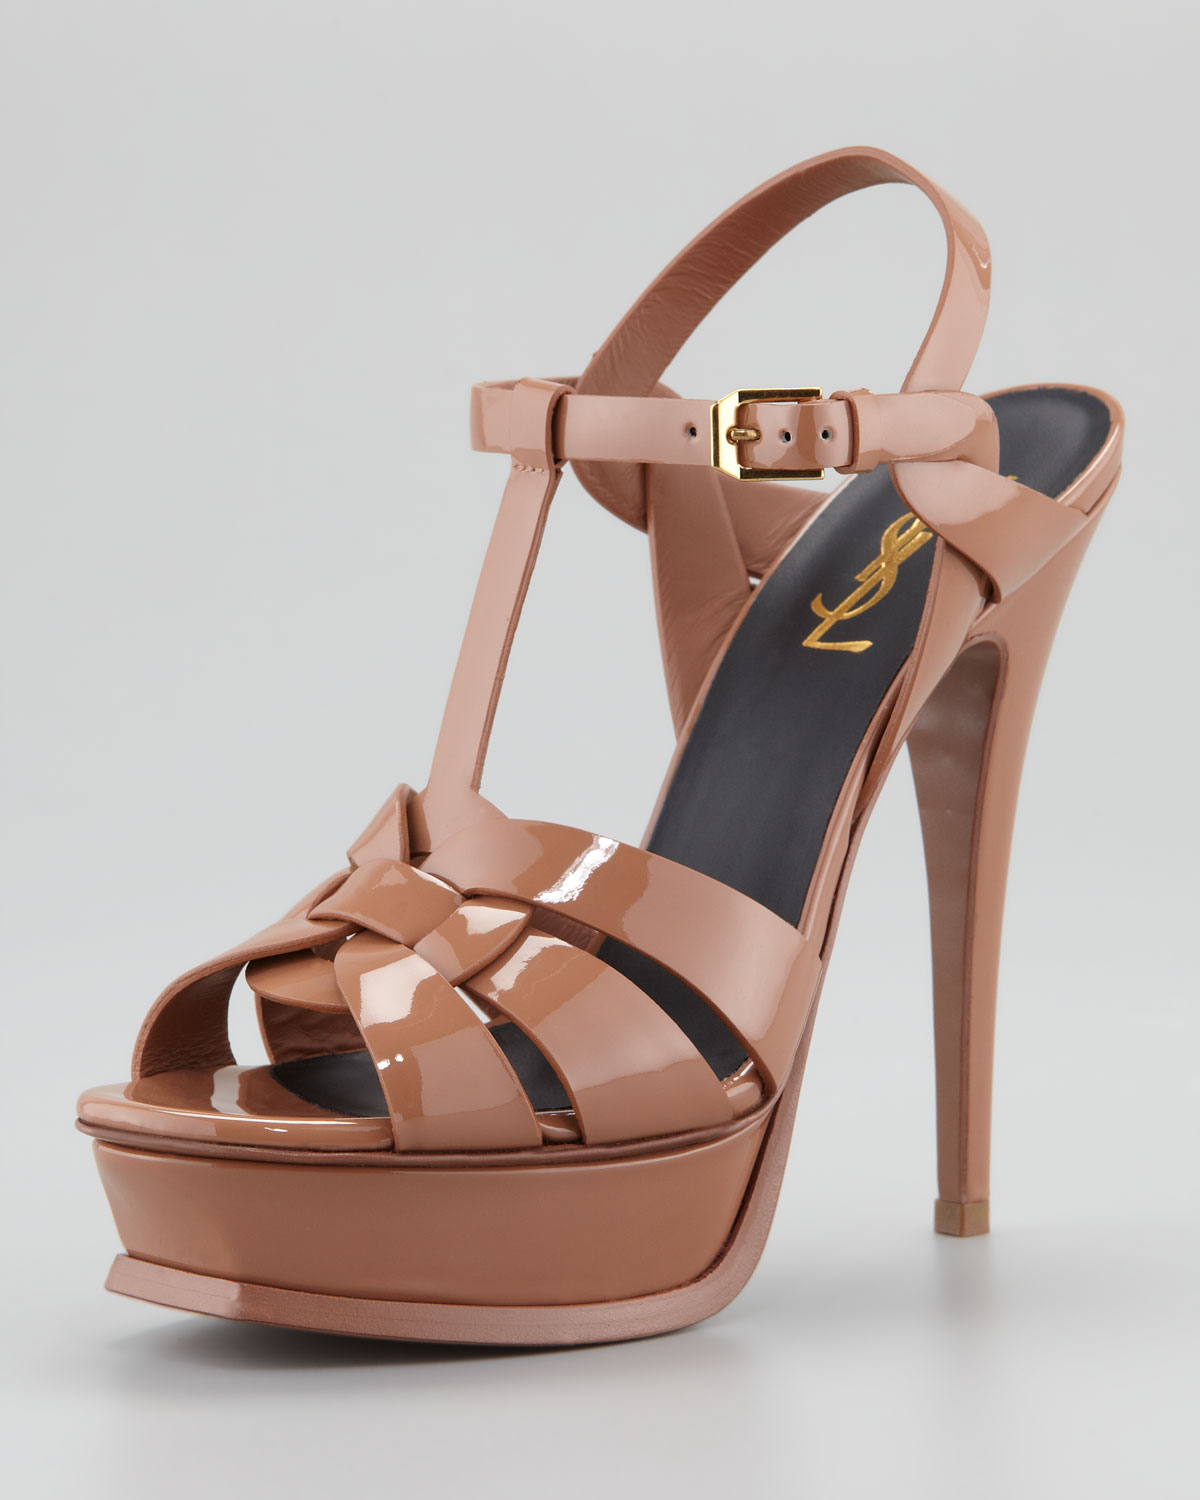 ed6668929 Saint Laurent Tribute Patent Leather Sandal in Brown - Lyst